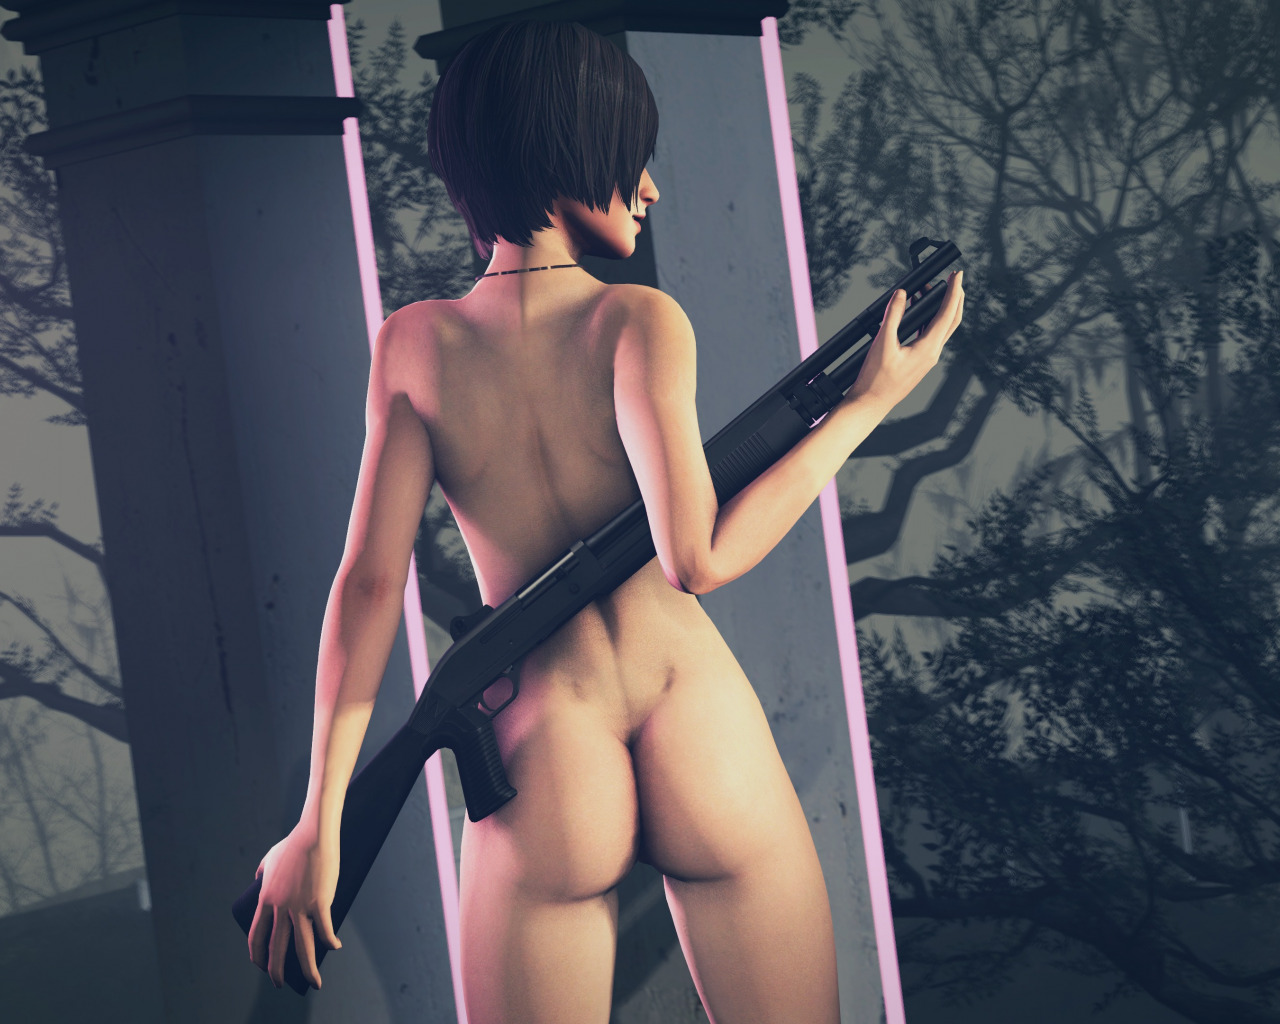 Hentai resident evil wallpapers nude download